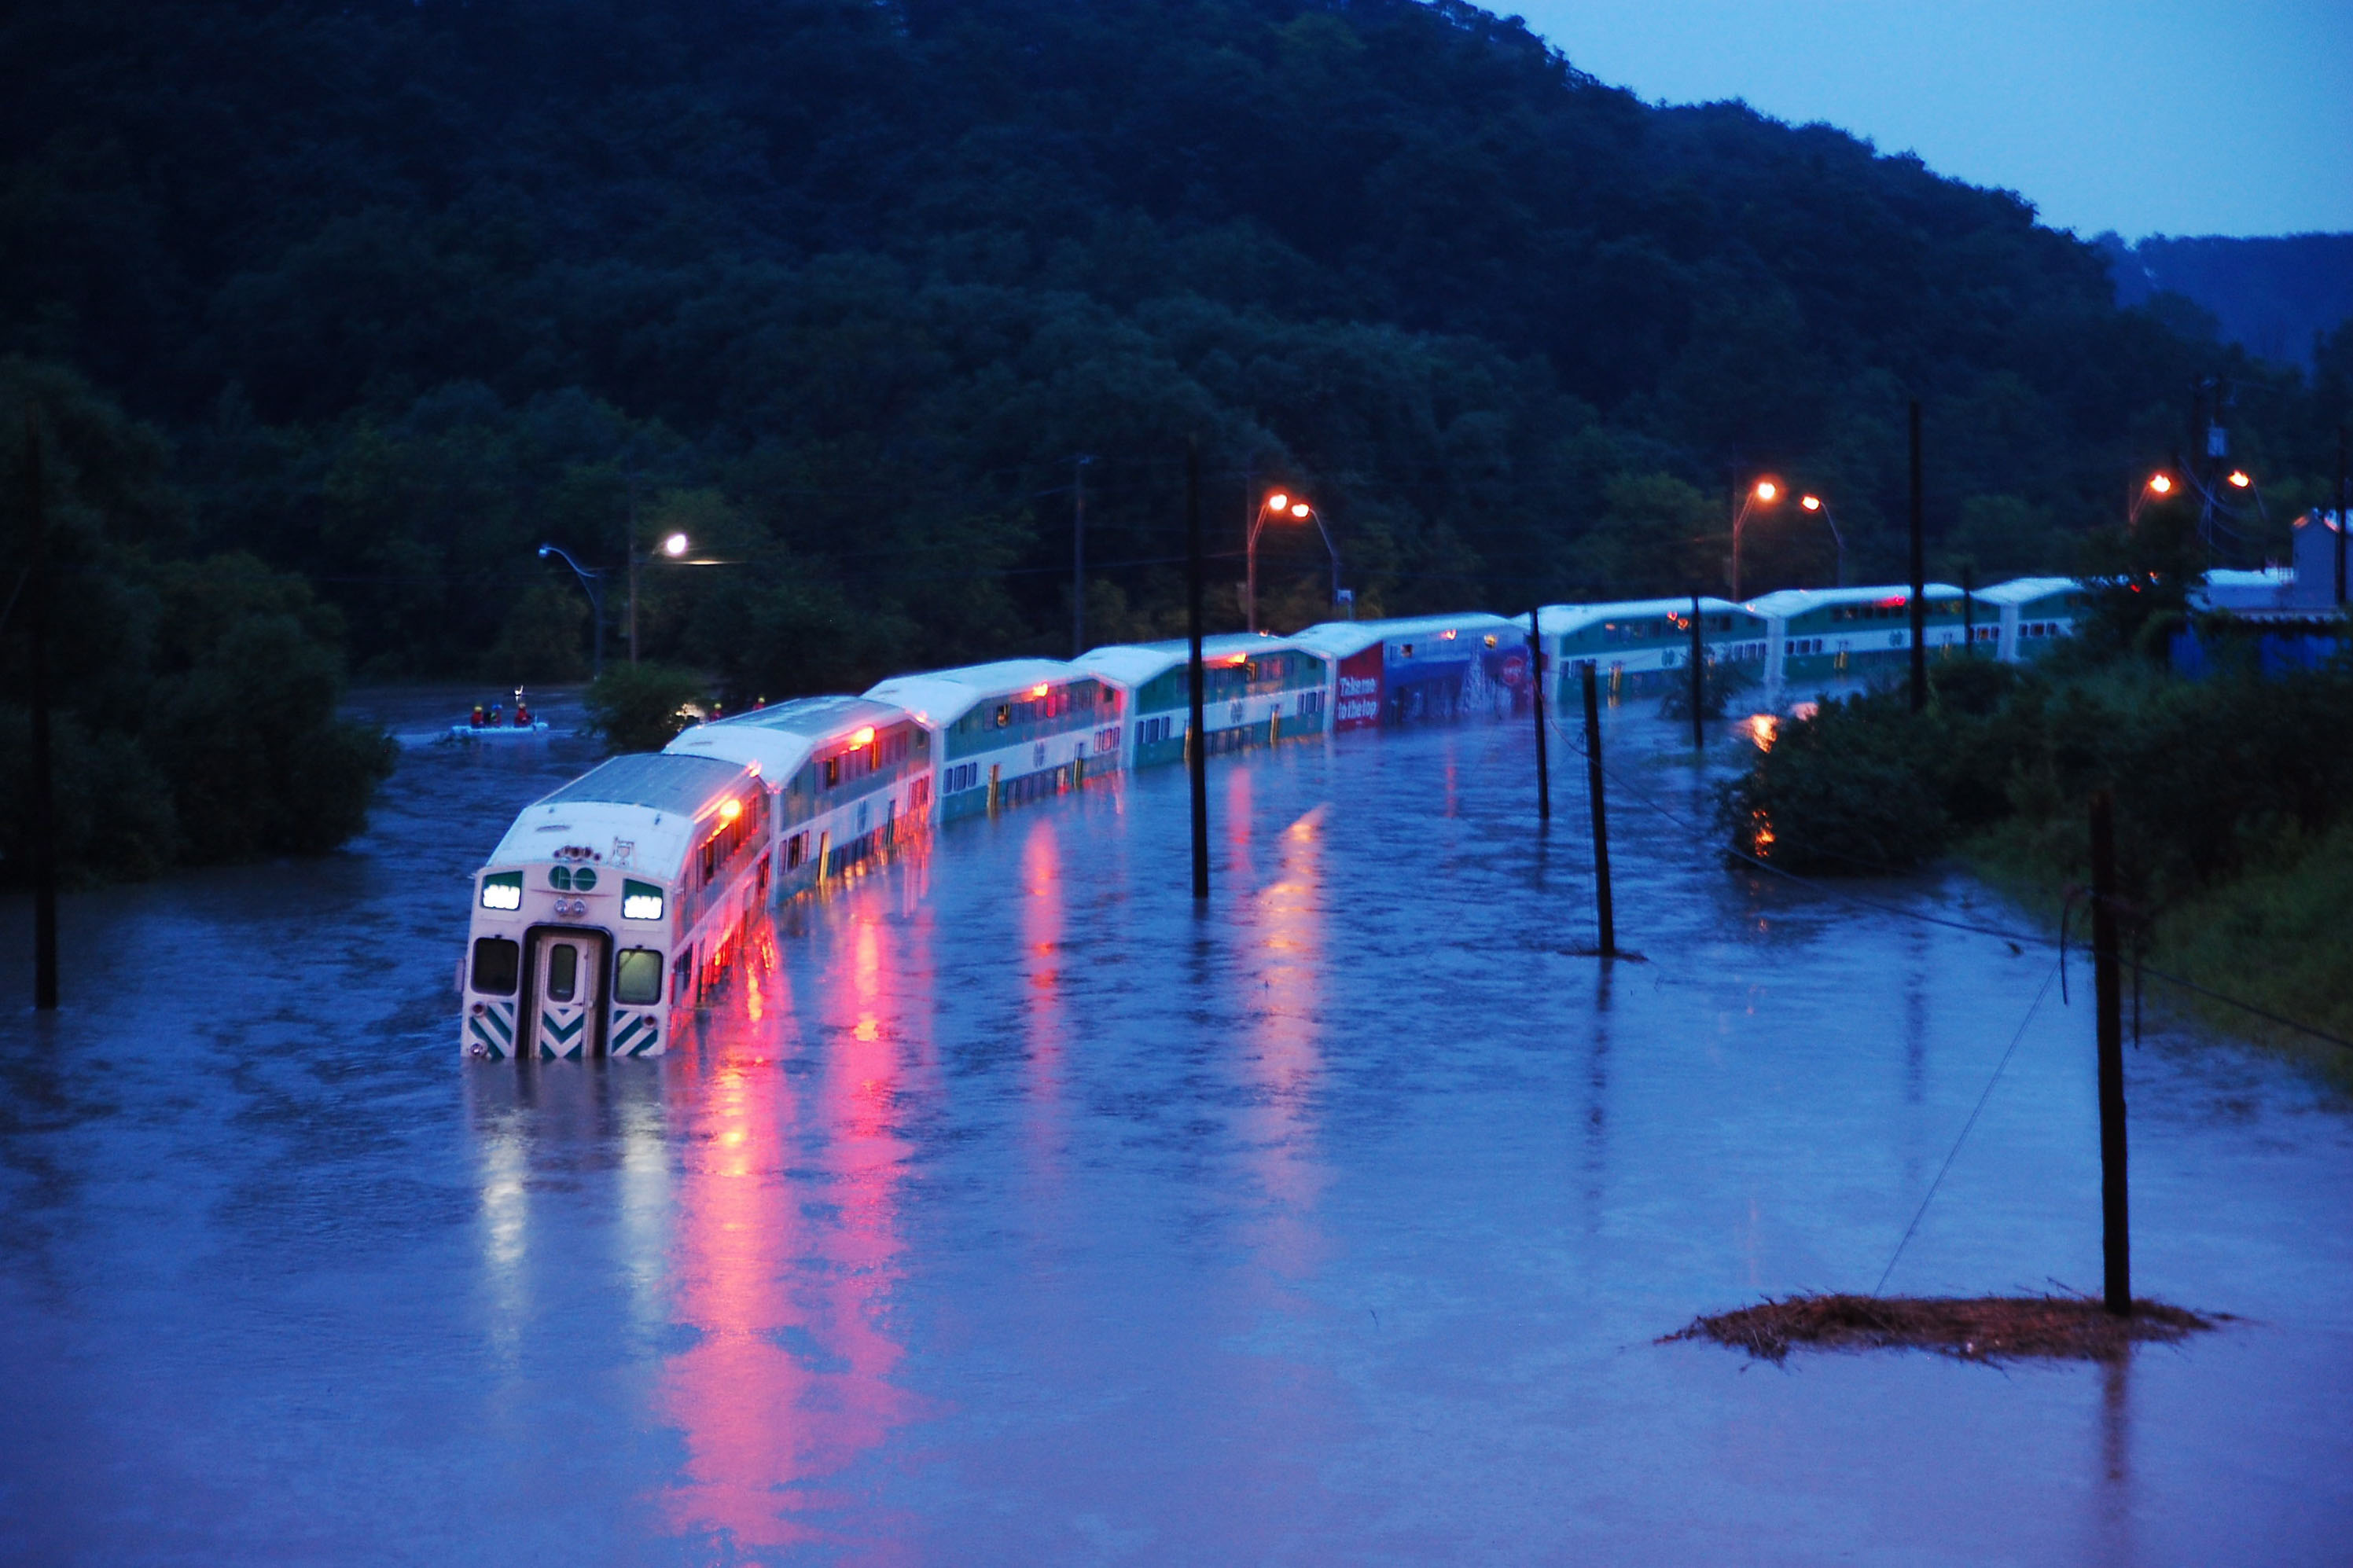 Japan floods: Death toll rises to 200 as UN offers assistance